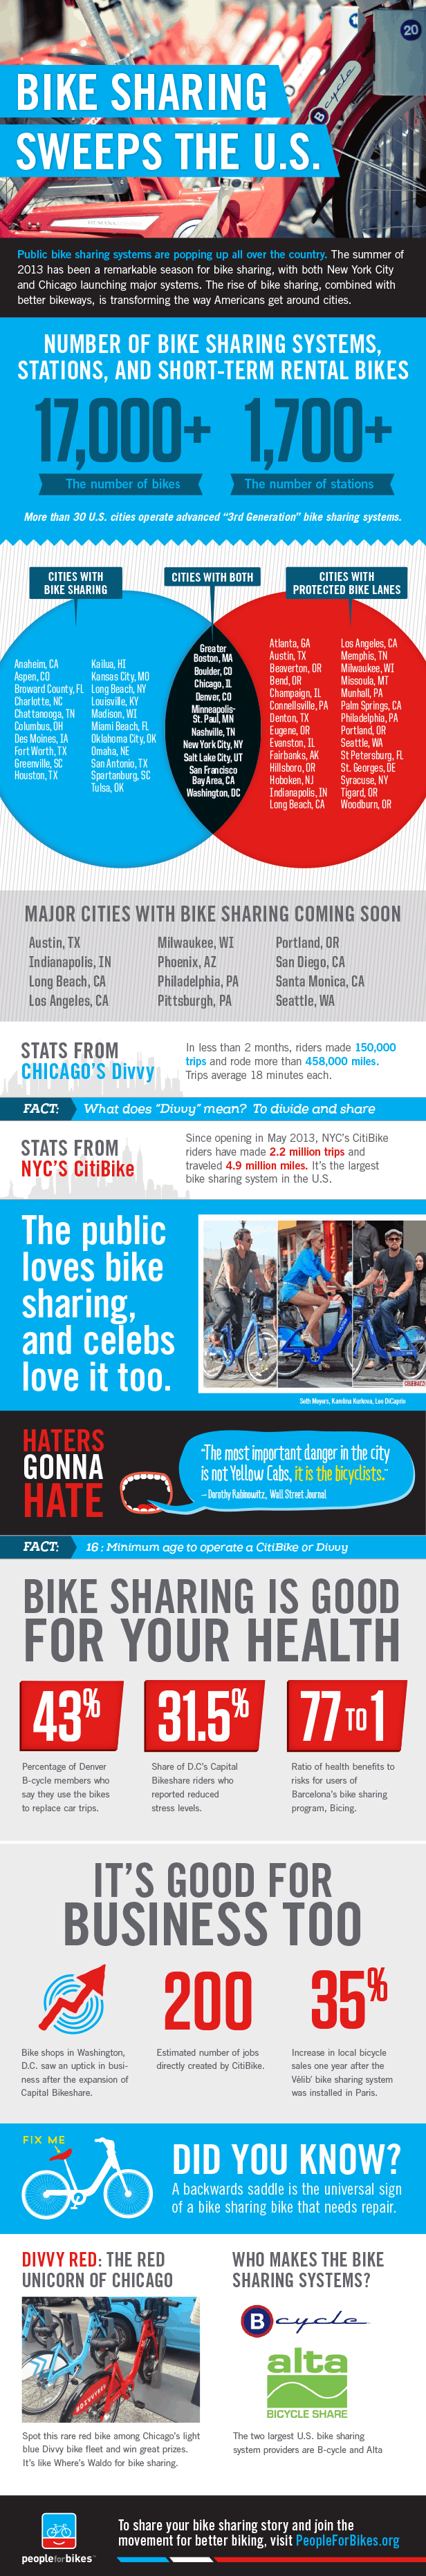 Bike Sharing Sweeps The U.S Infographic